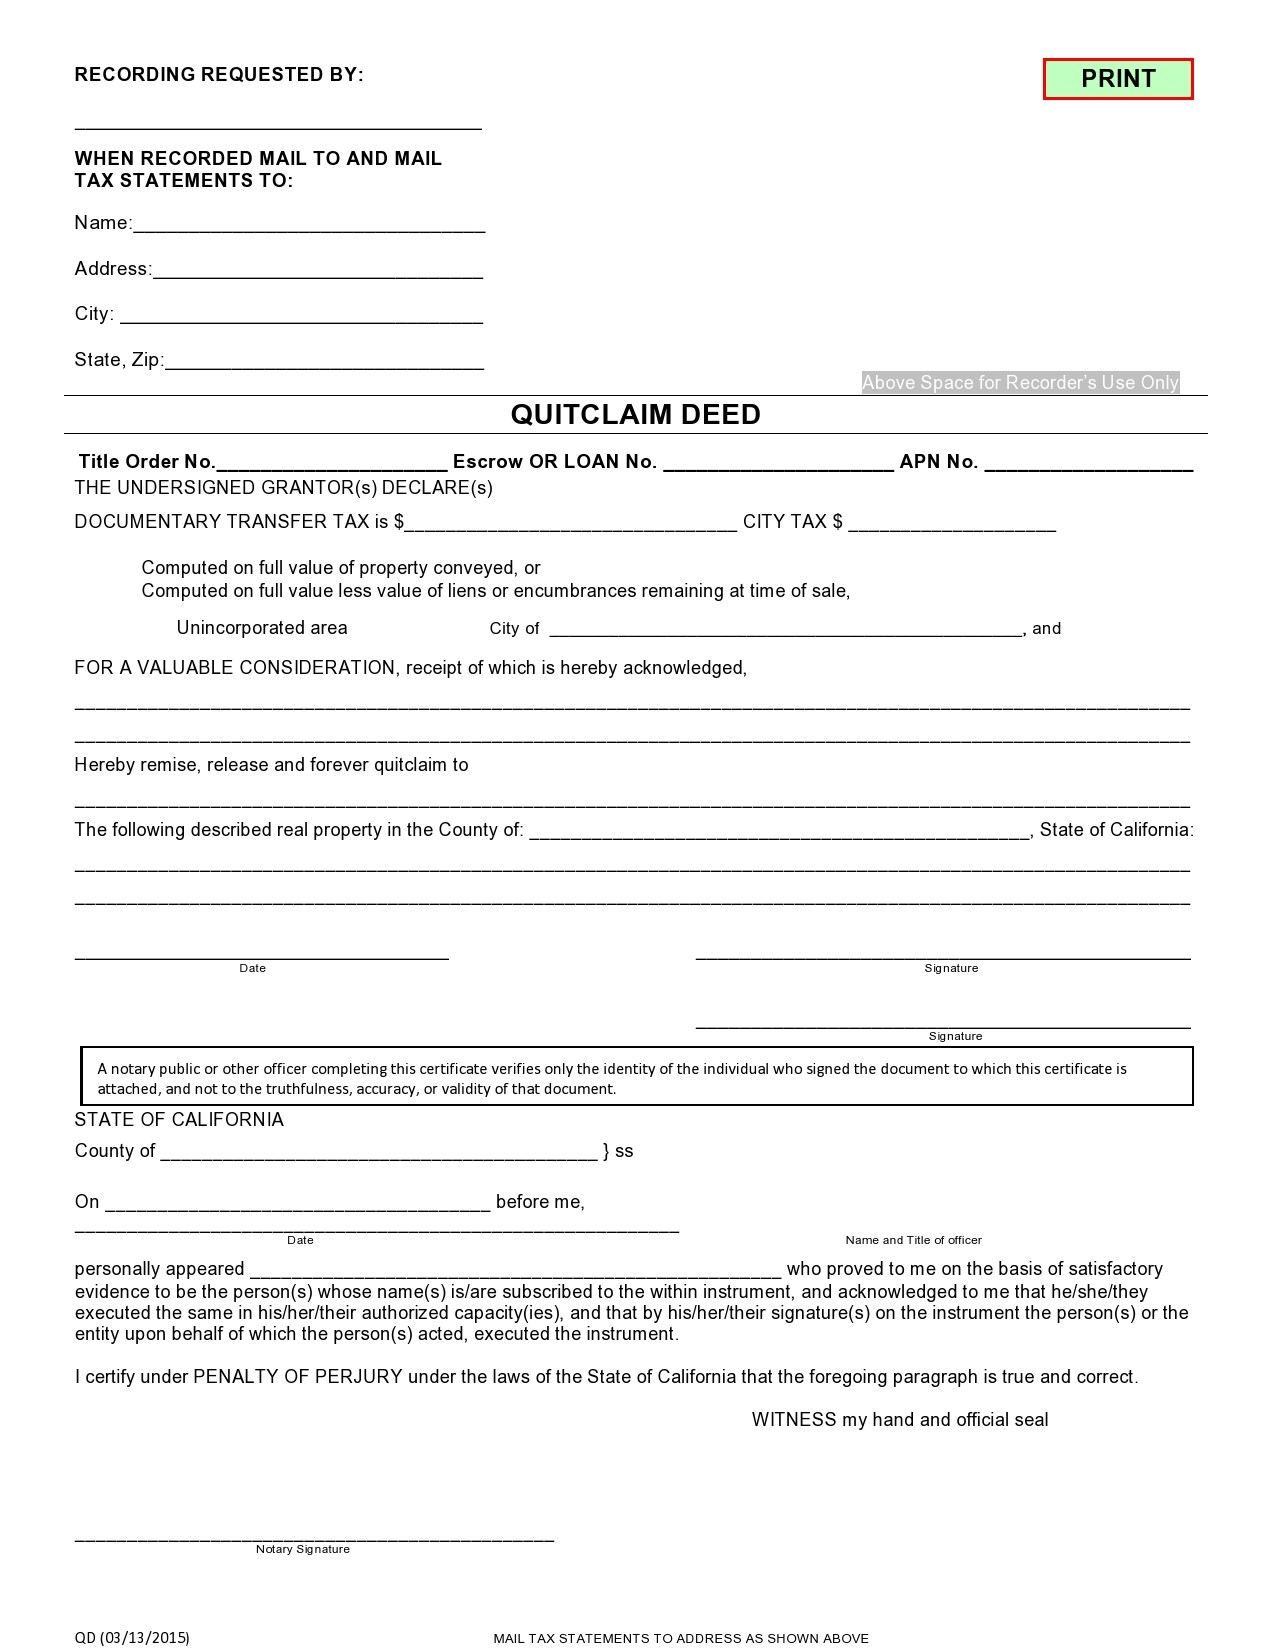 Free quit claim deed form 28